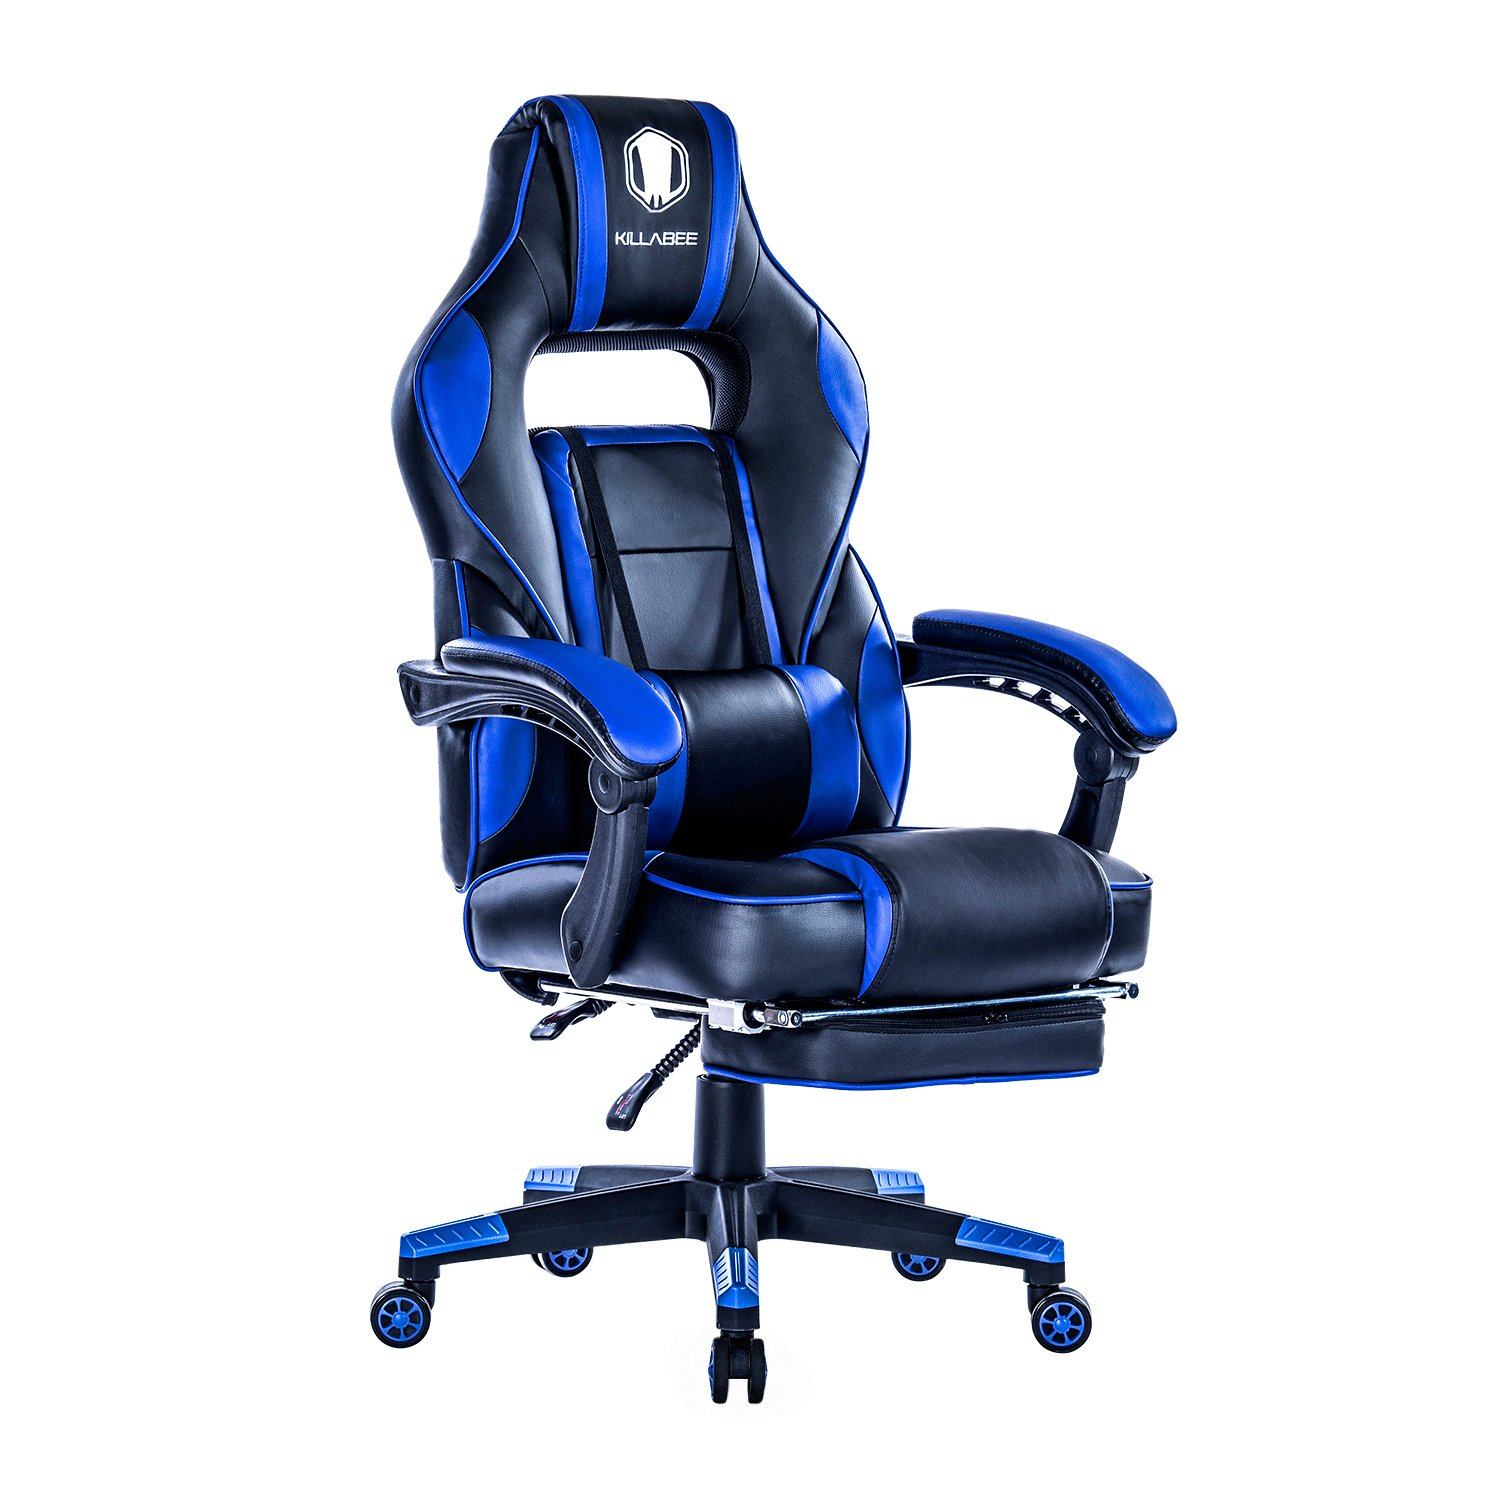 Banana game chair - Killabee Racing Pc Gaming Chair Ergonomic High Back Reclining Office Desk Chair Swivel With Retractable